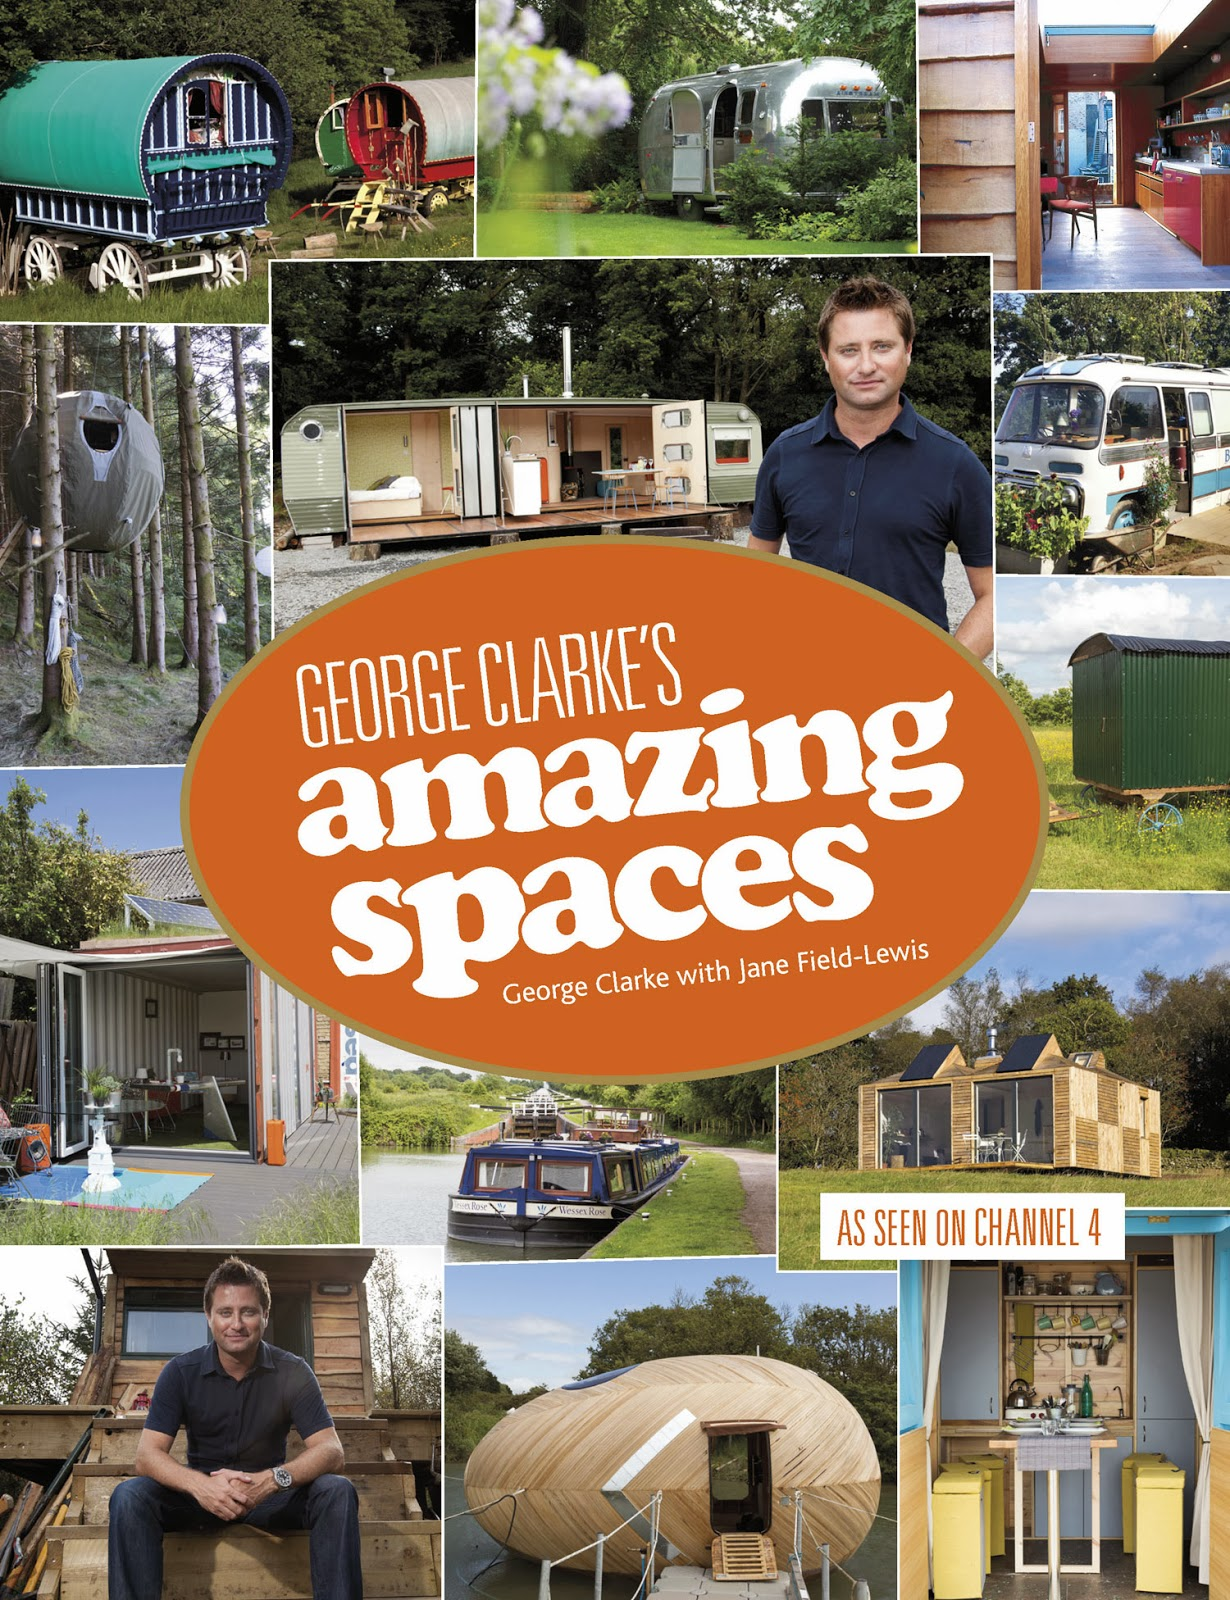 PPP3 - George Clarkes Amazing Spaces | Josephineeee.